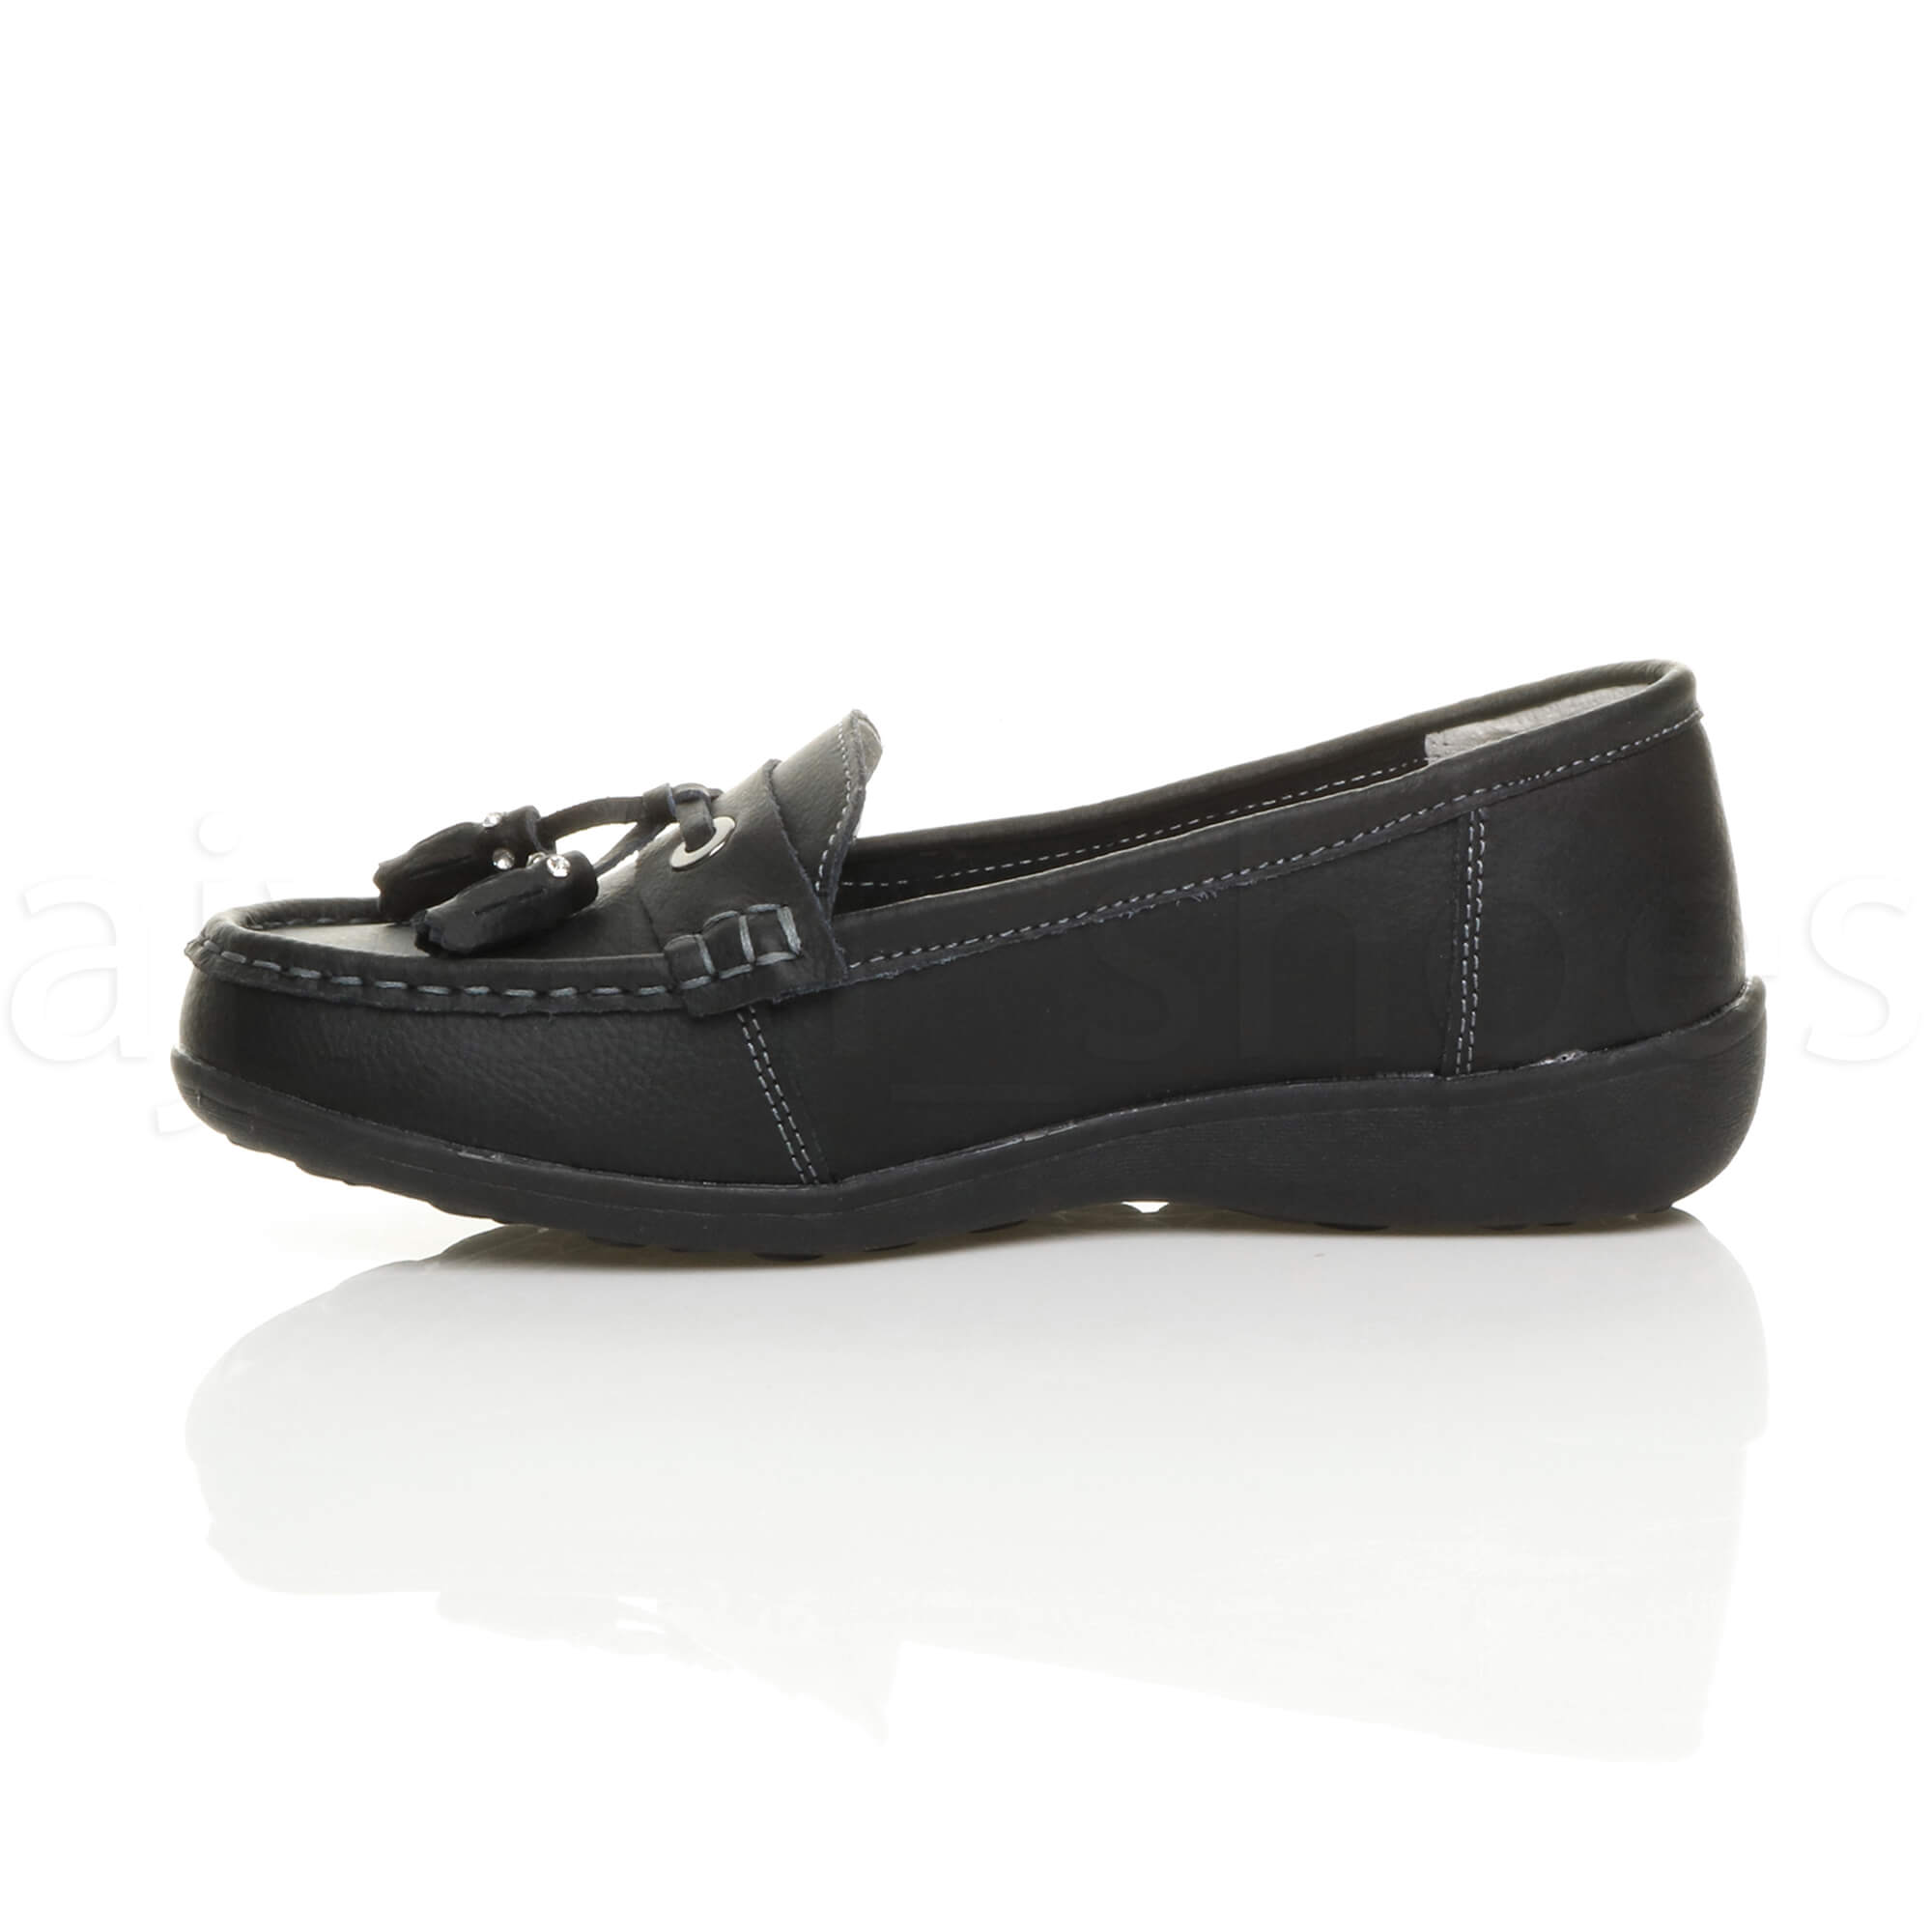 WOMENS-LADIES-LOW-HEEL-WEDGE-LEATHER-TASSEL-LOAFERS-COMFORT-MOCCASINS-SHOES-SIZE thumbnail 12